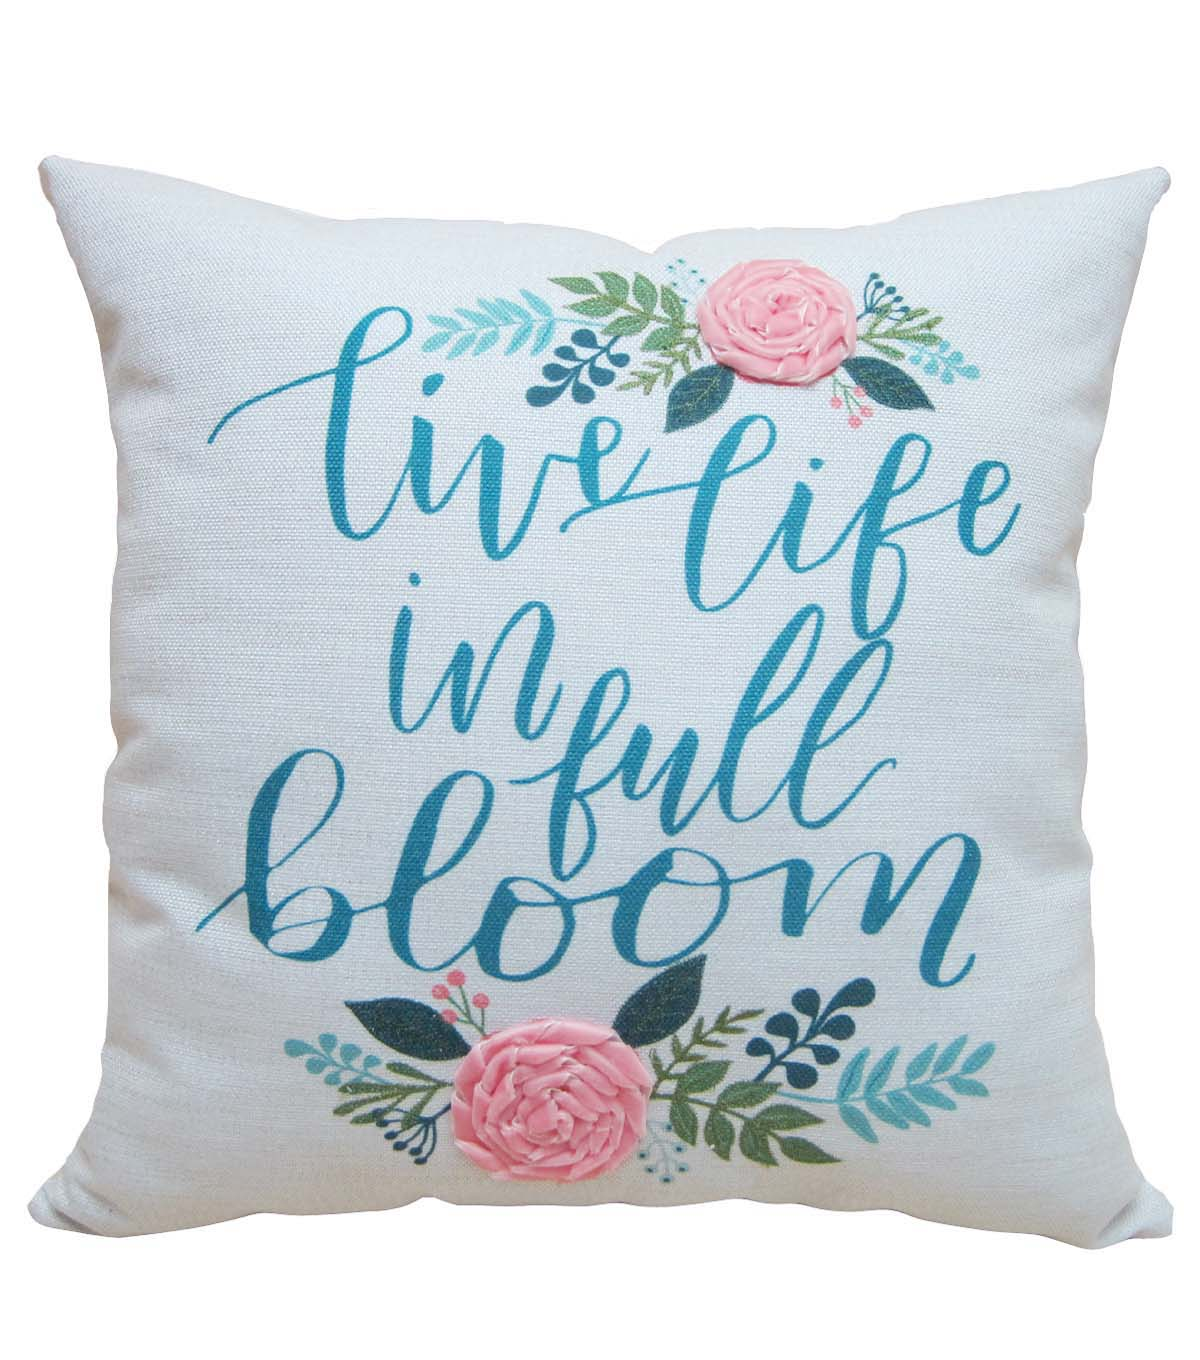 Hello Spring 3D Floral Pillow-Live Life in Full Bloom